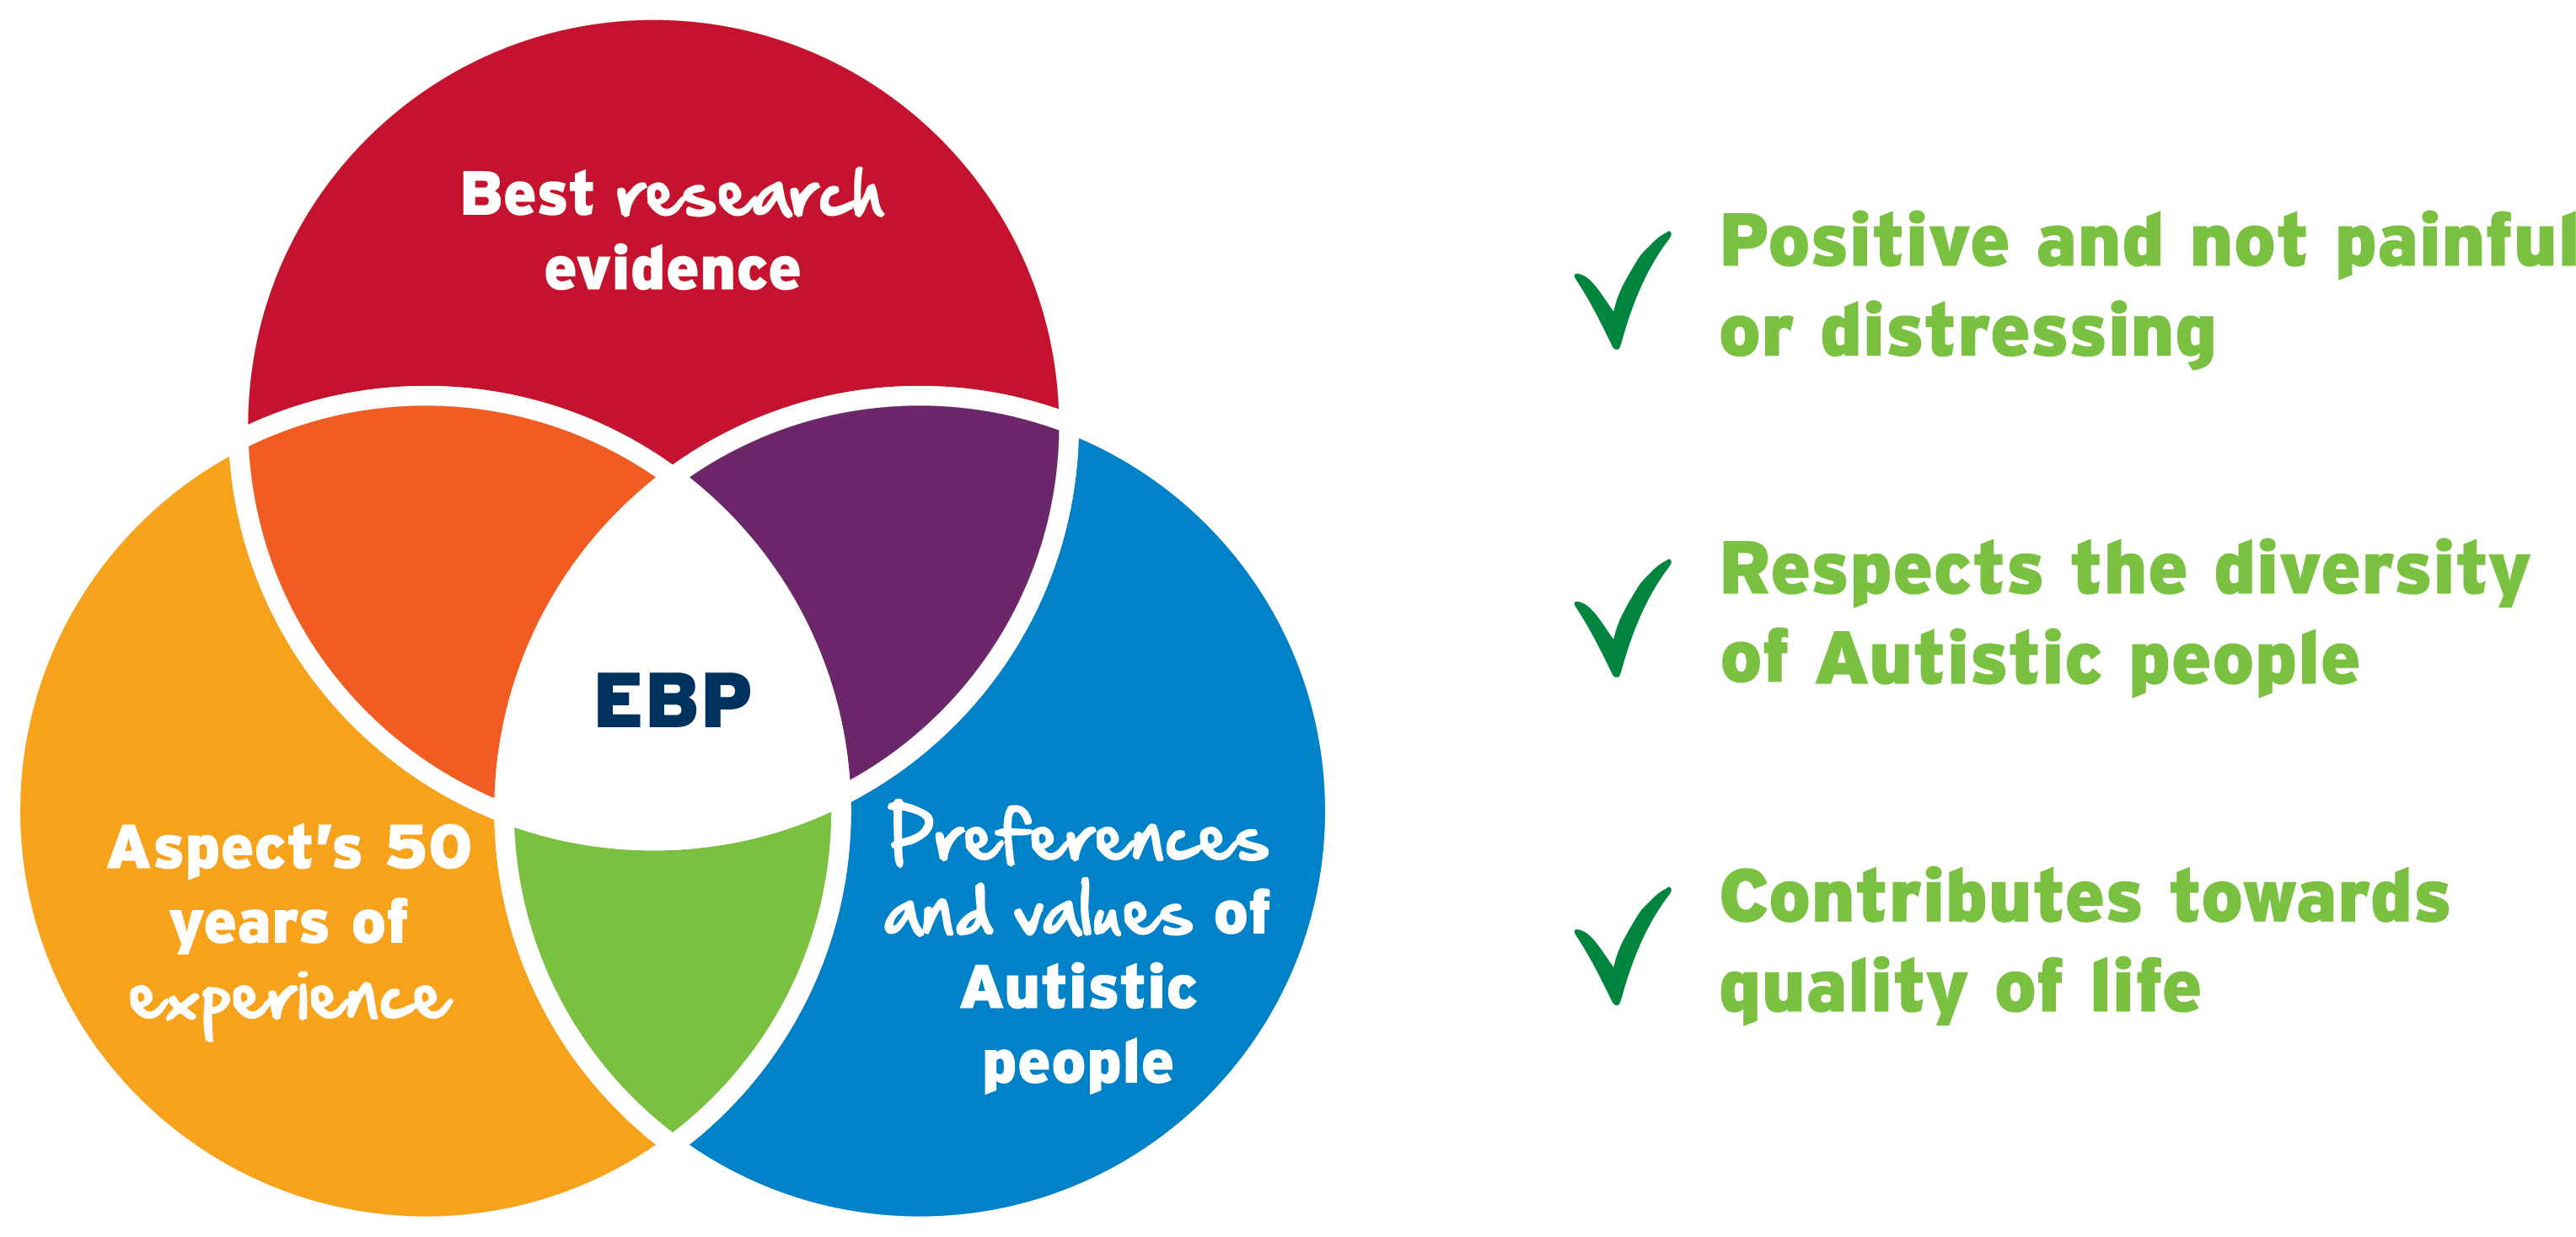 What is Evidence Based Practice at Aspect?